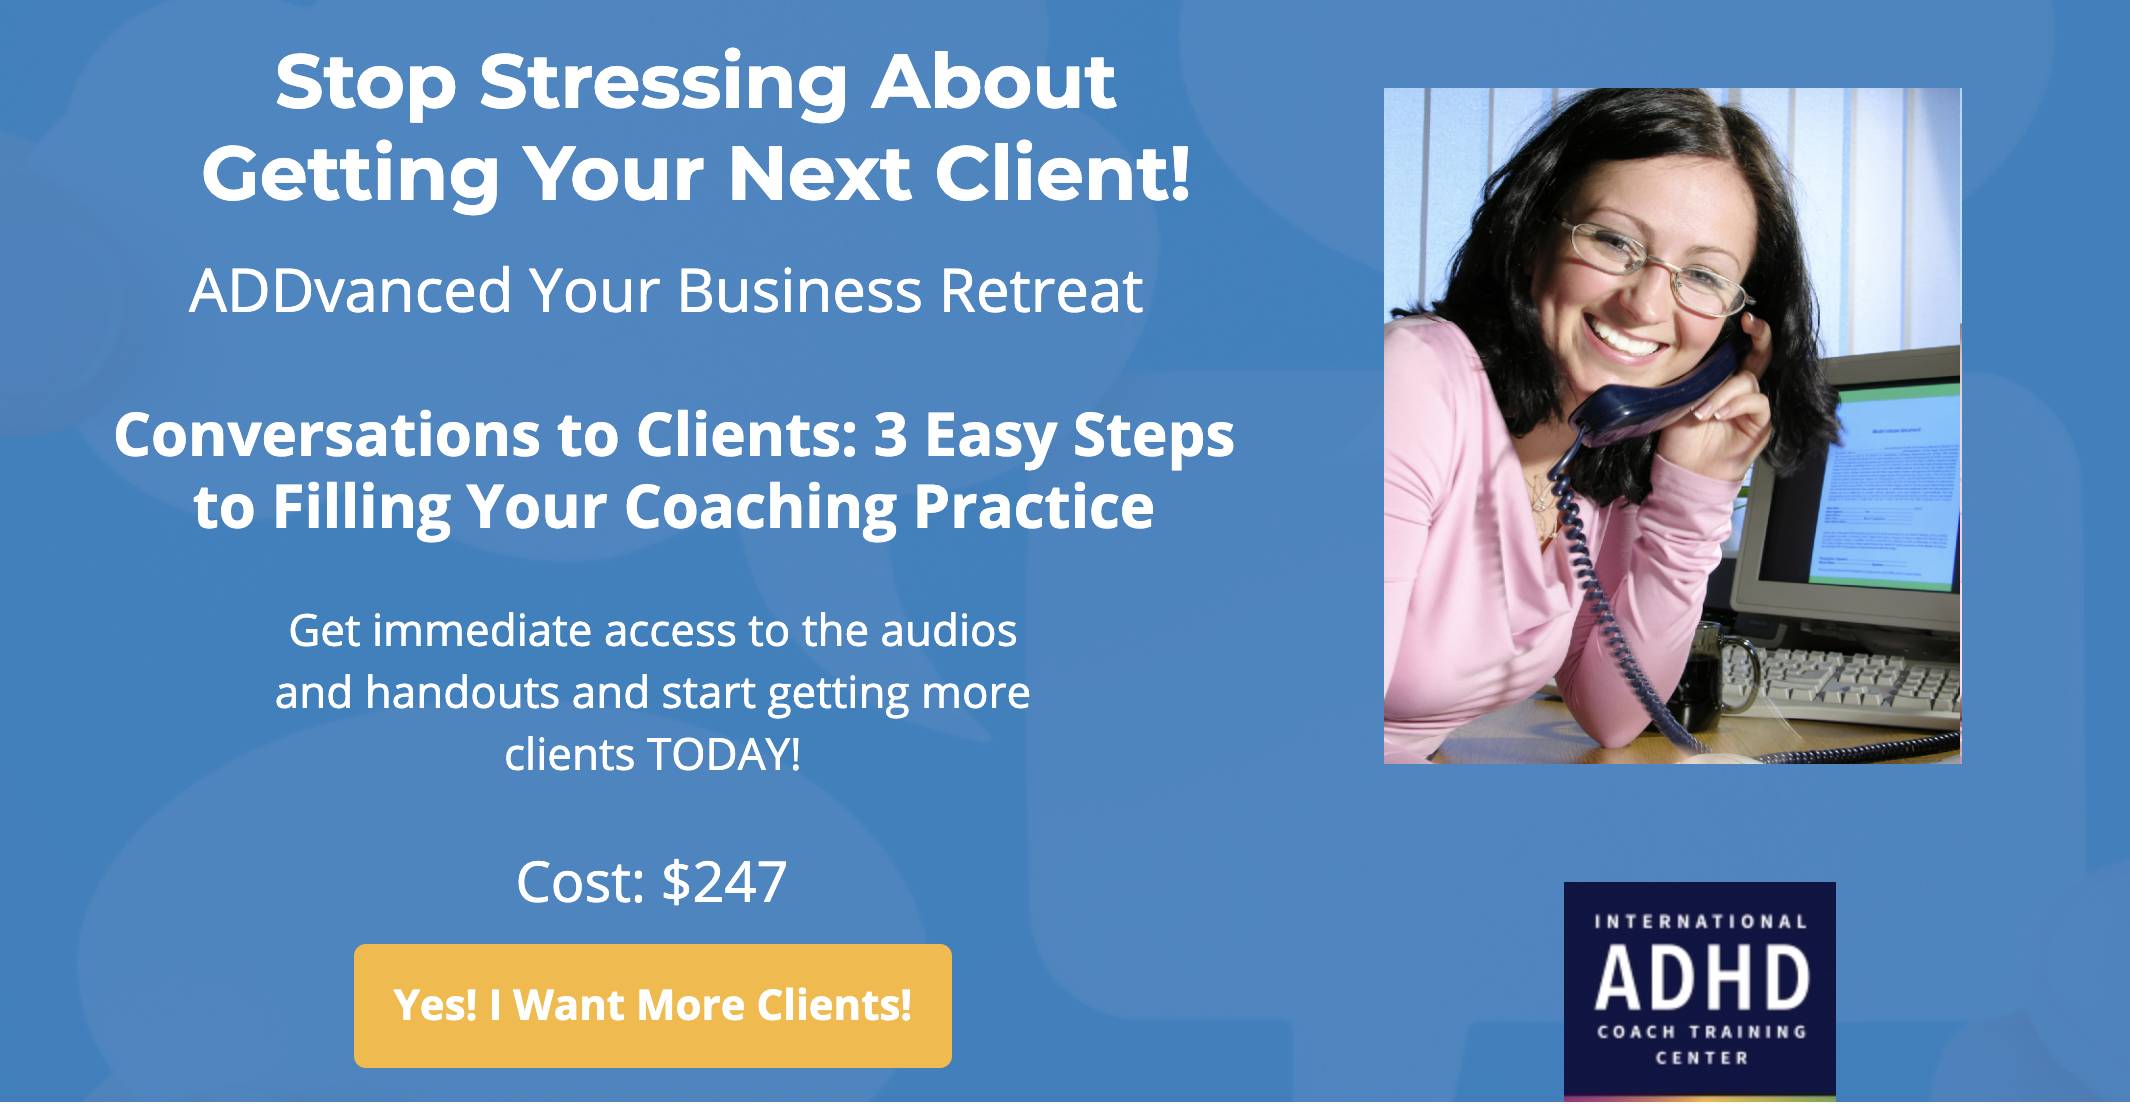 Conversations to Clients: There is a system so you can stop stressing about getting your next client! Learn the tried and true proven, 3 steps to go from a simple conversation to enrolling a new client.